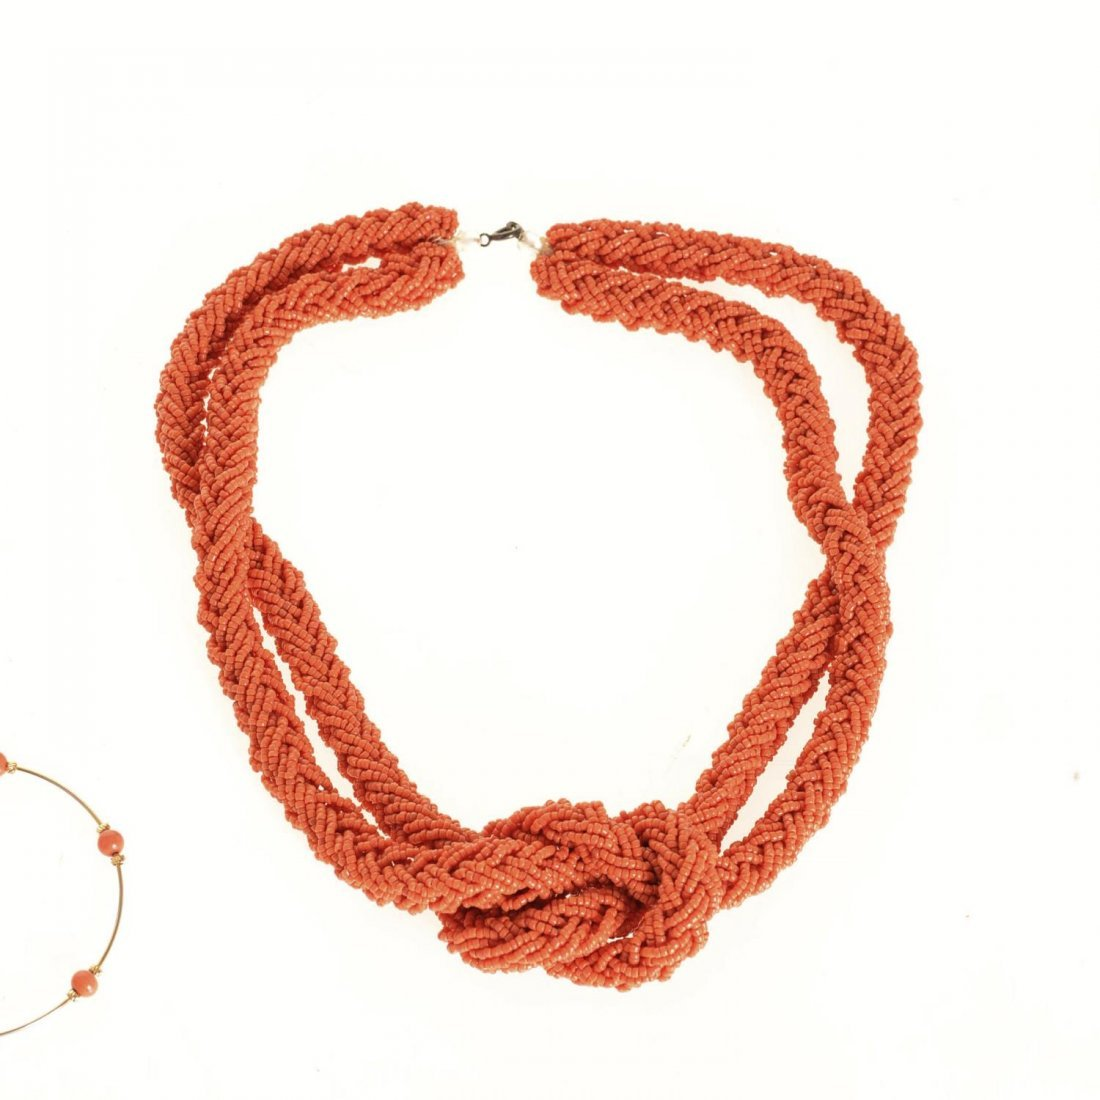 (4) pcs. Antique coral jewelry - 6